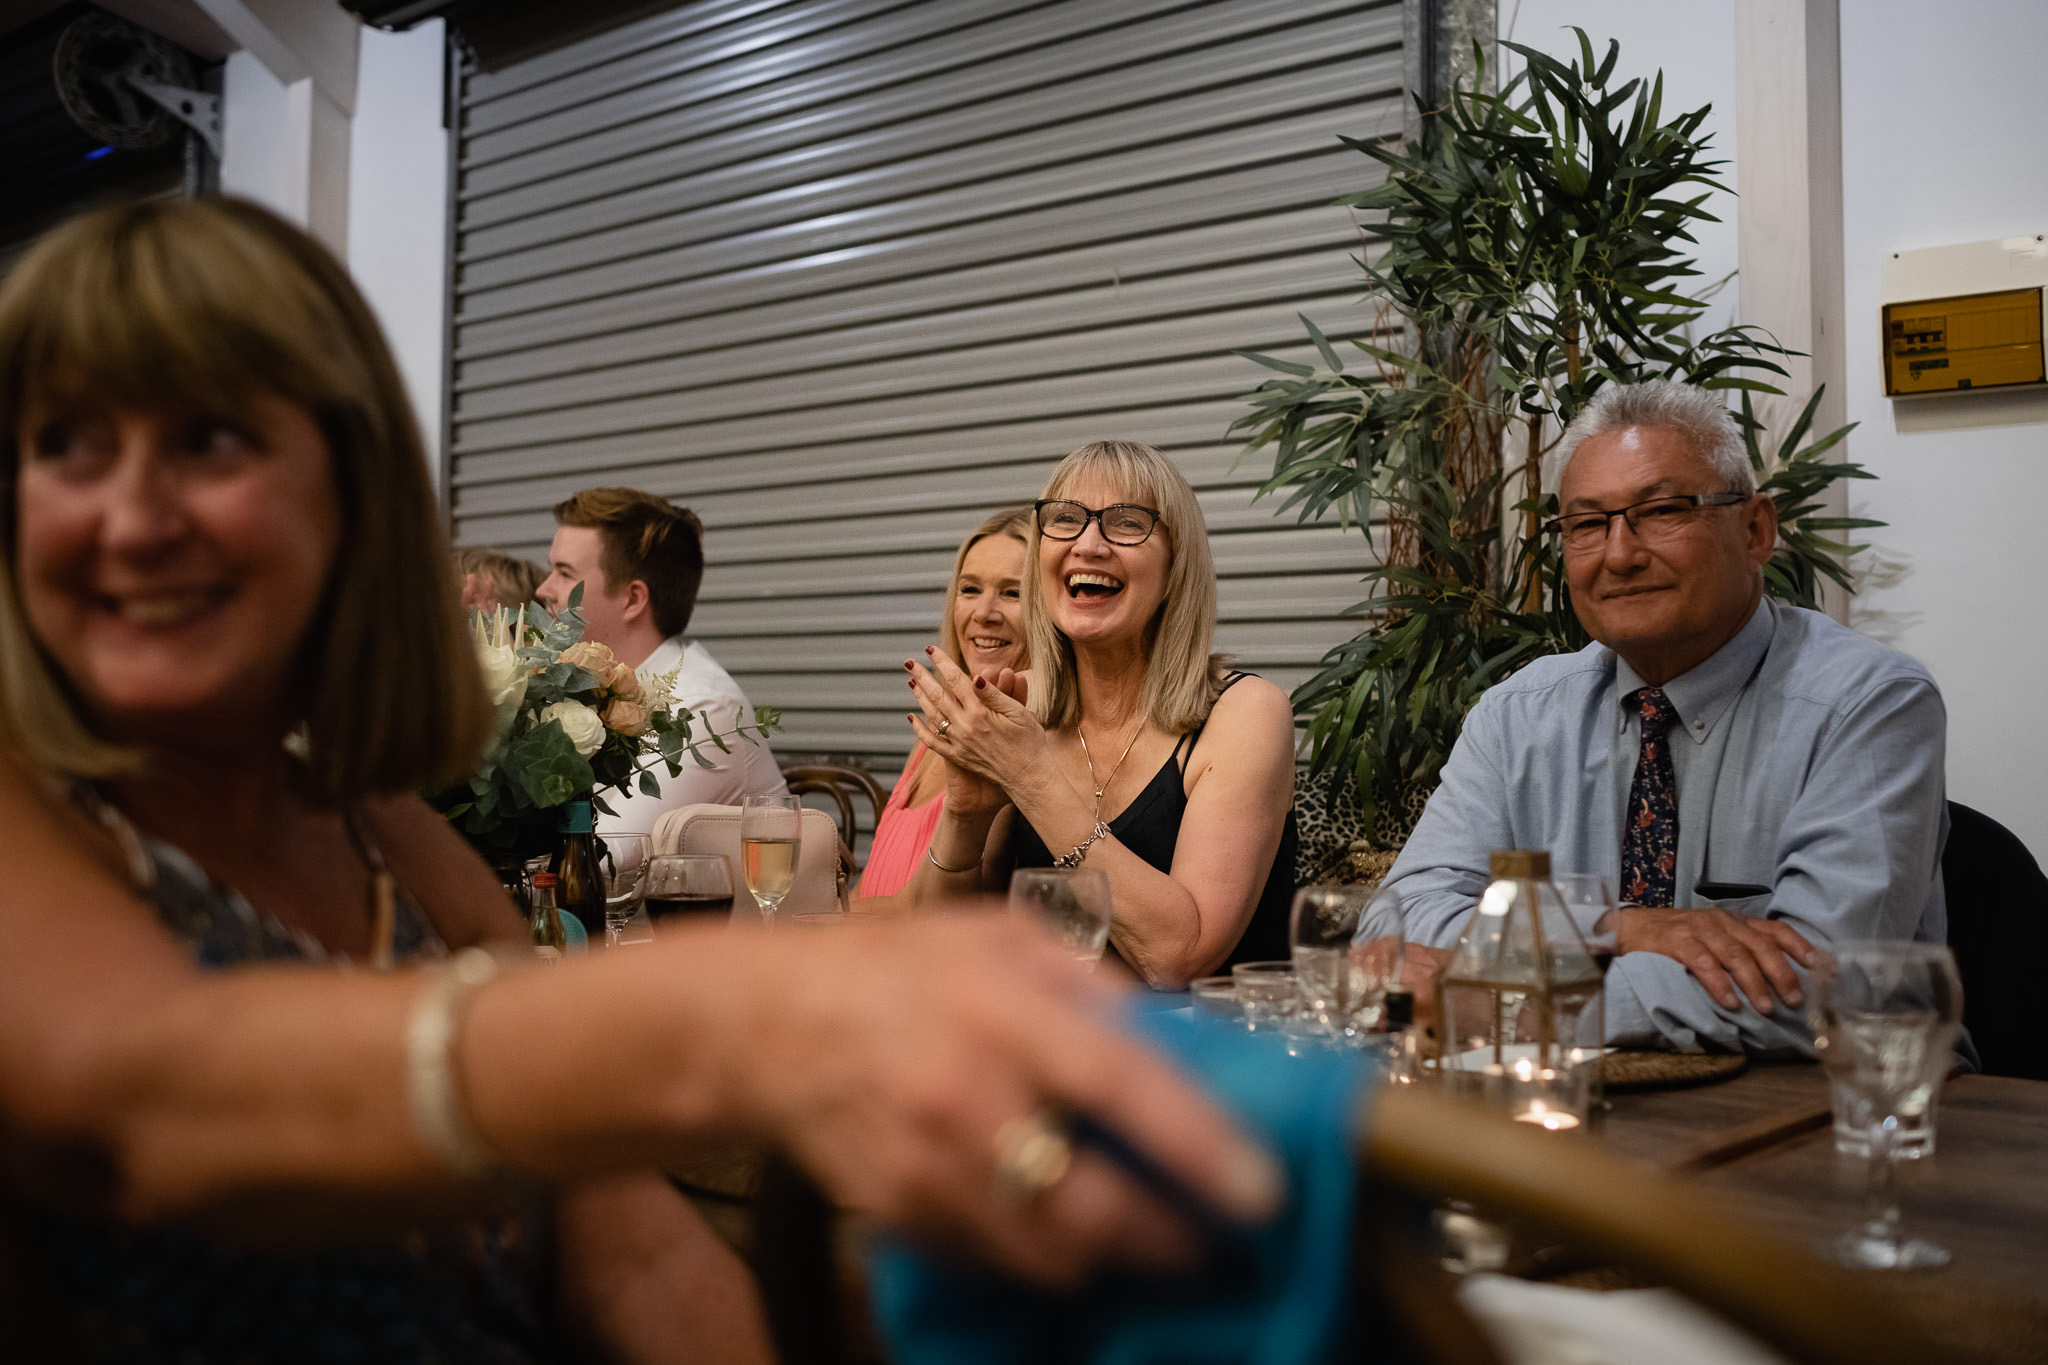 Family friend laughing and clapping during wedding speeches